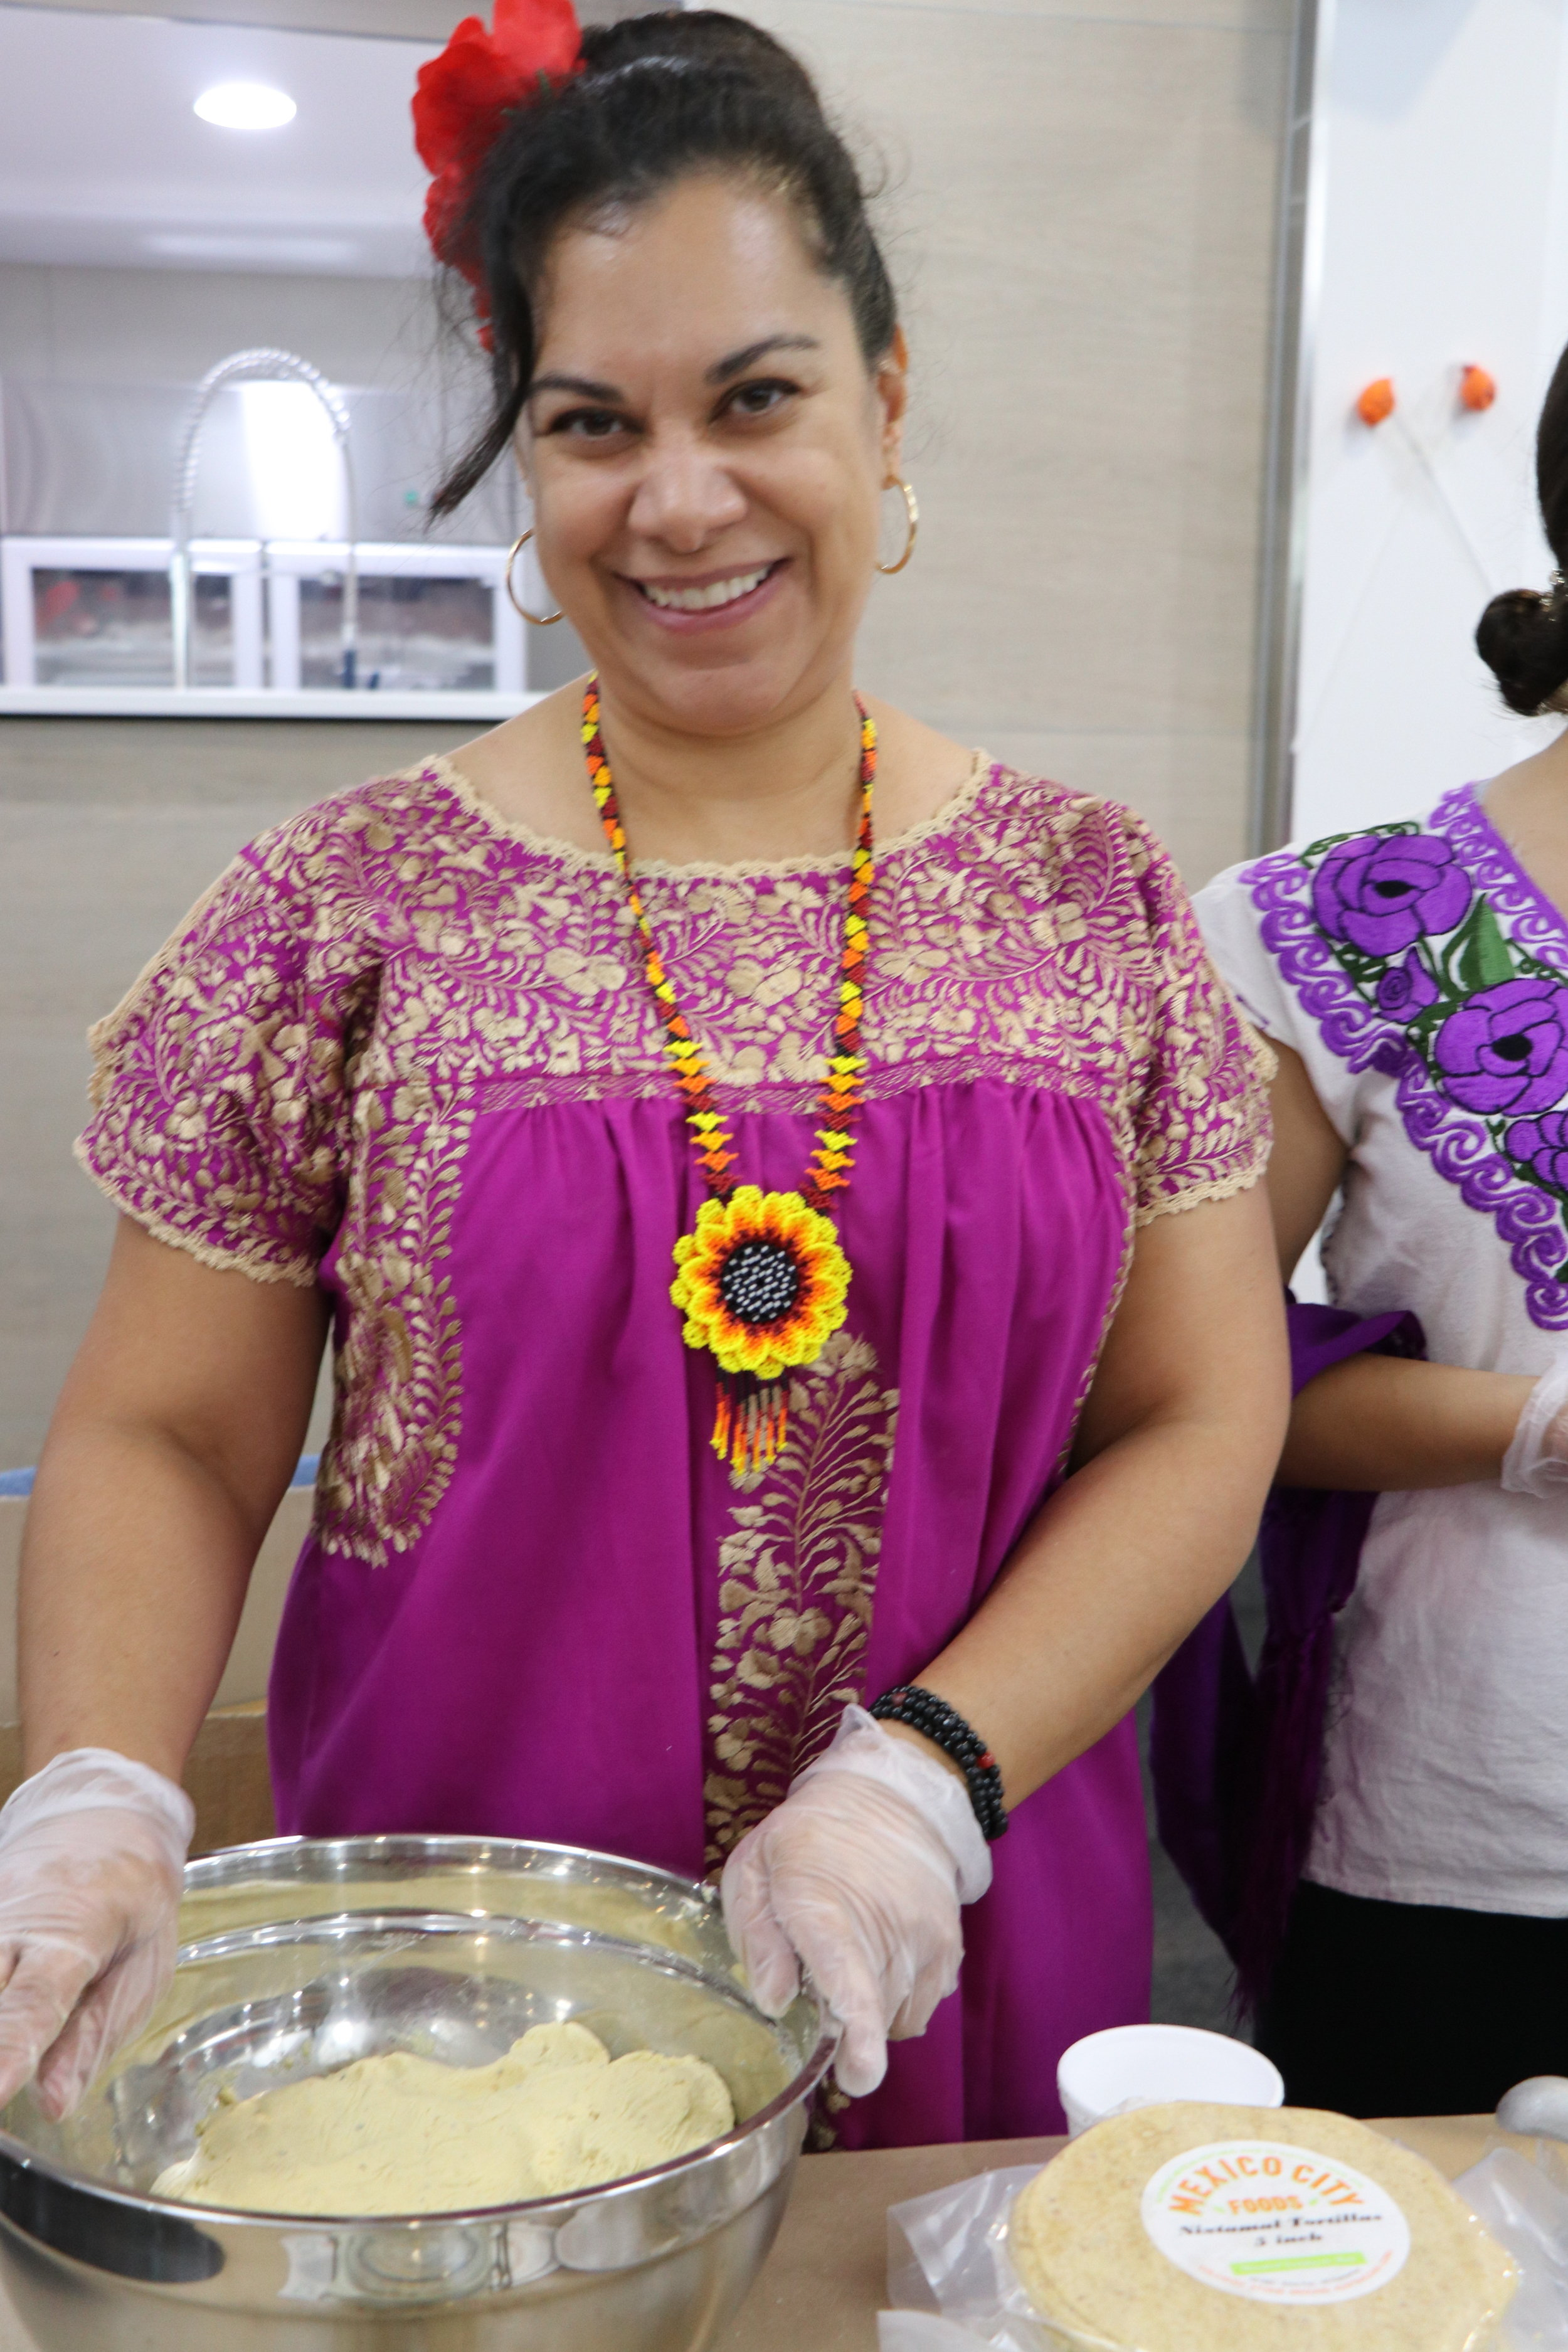 Diana from Mexico City Foods making Tortillas at Breaking Bread. Image Courtesy of Naomi Shore